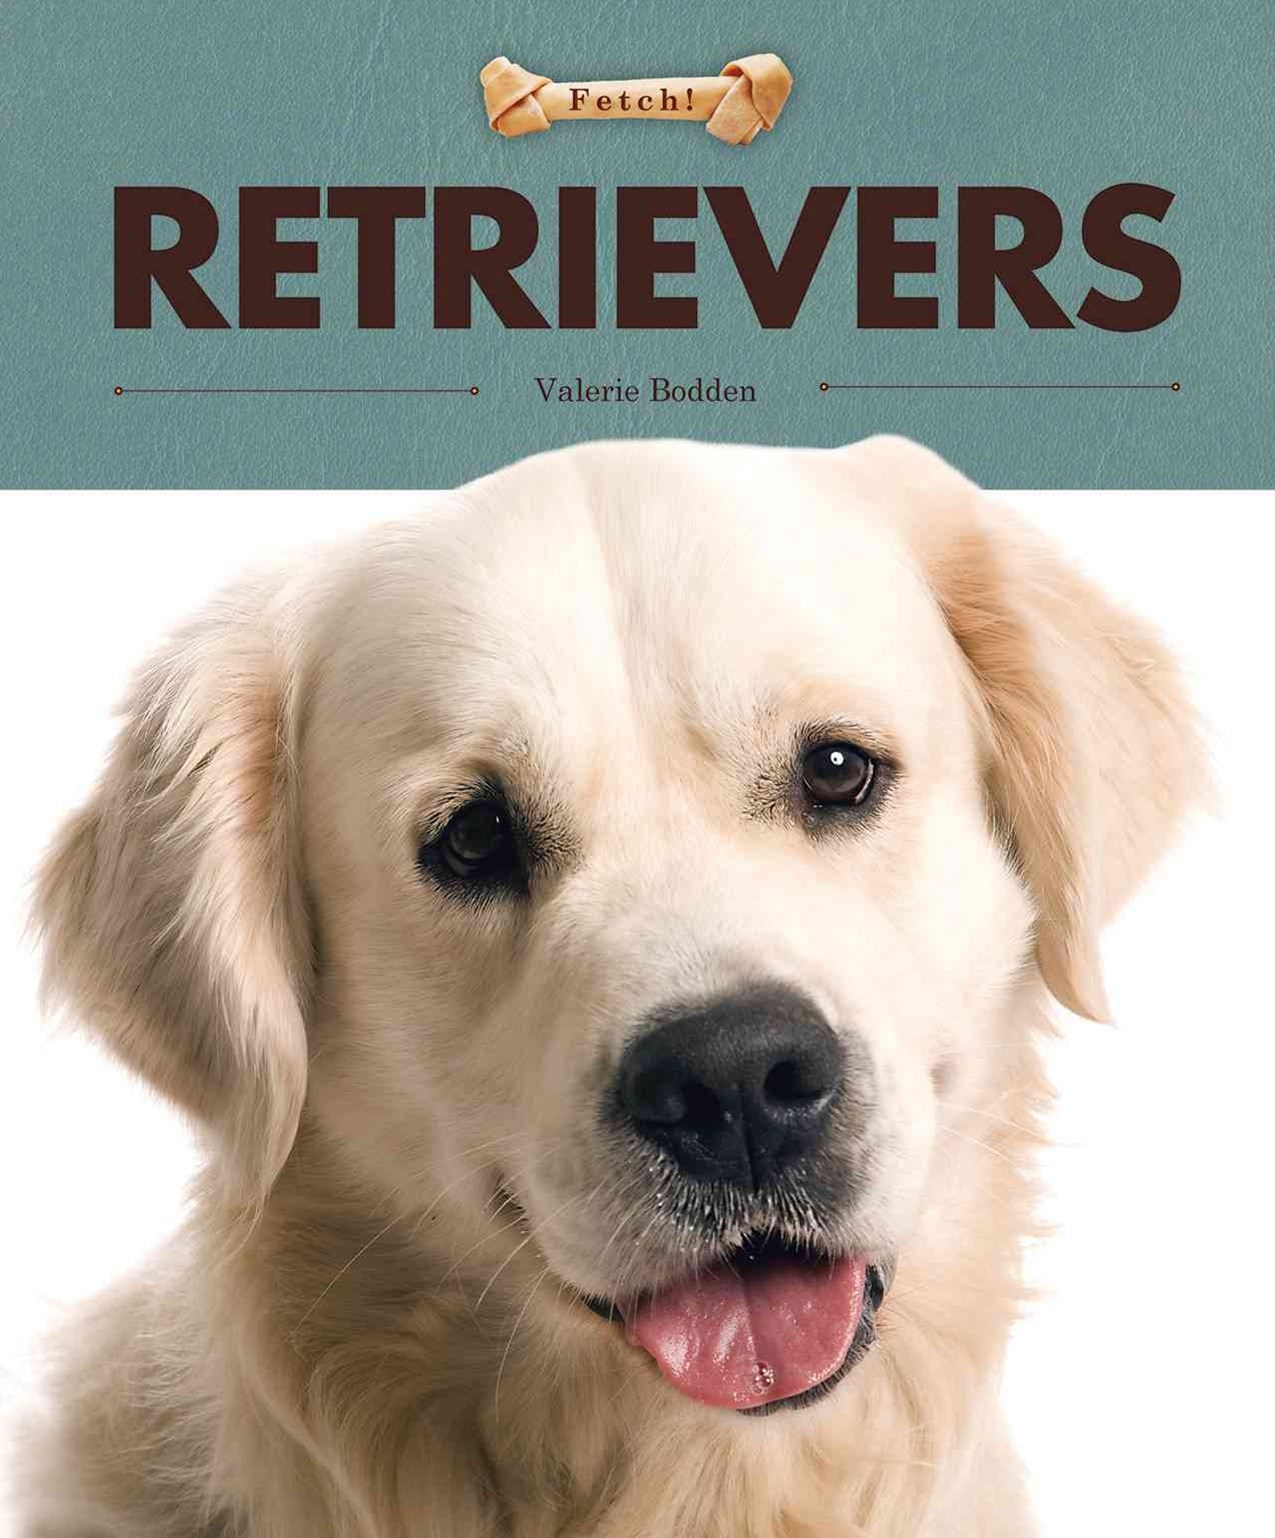 Fetch!: Retrievers